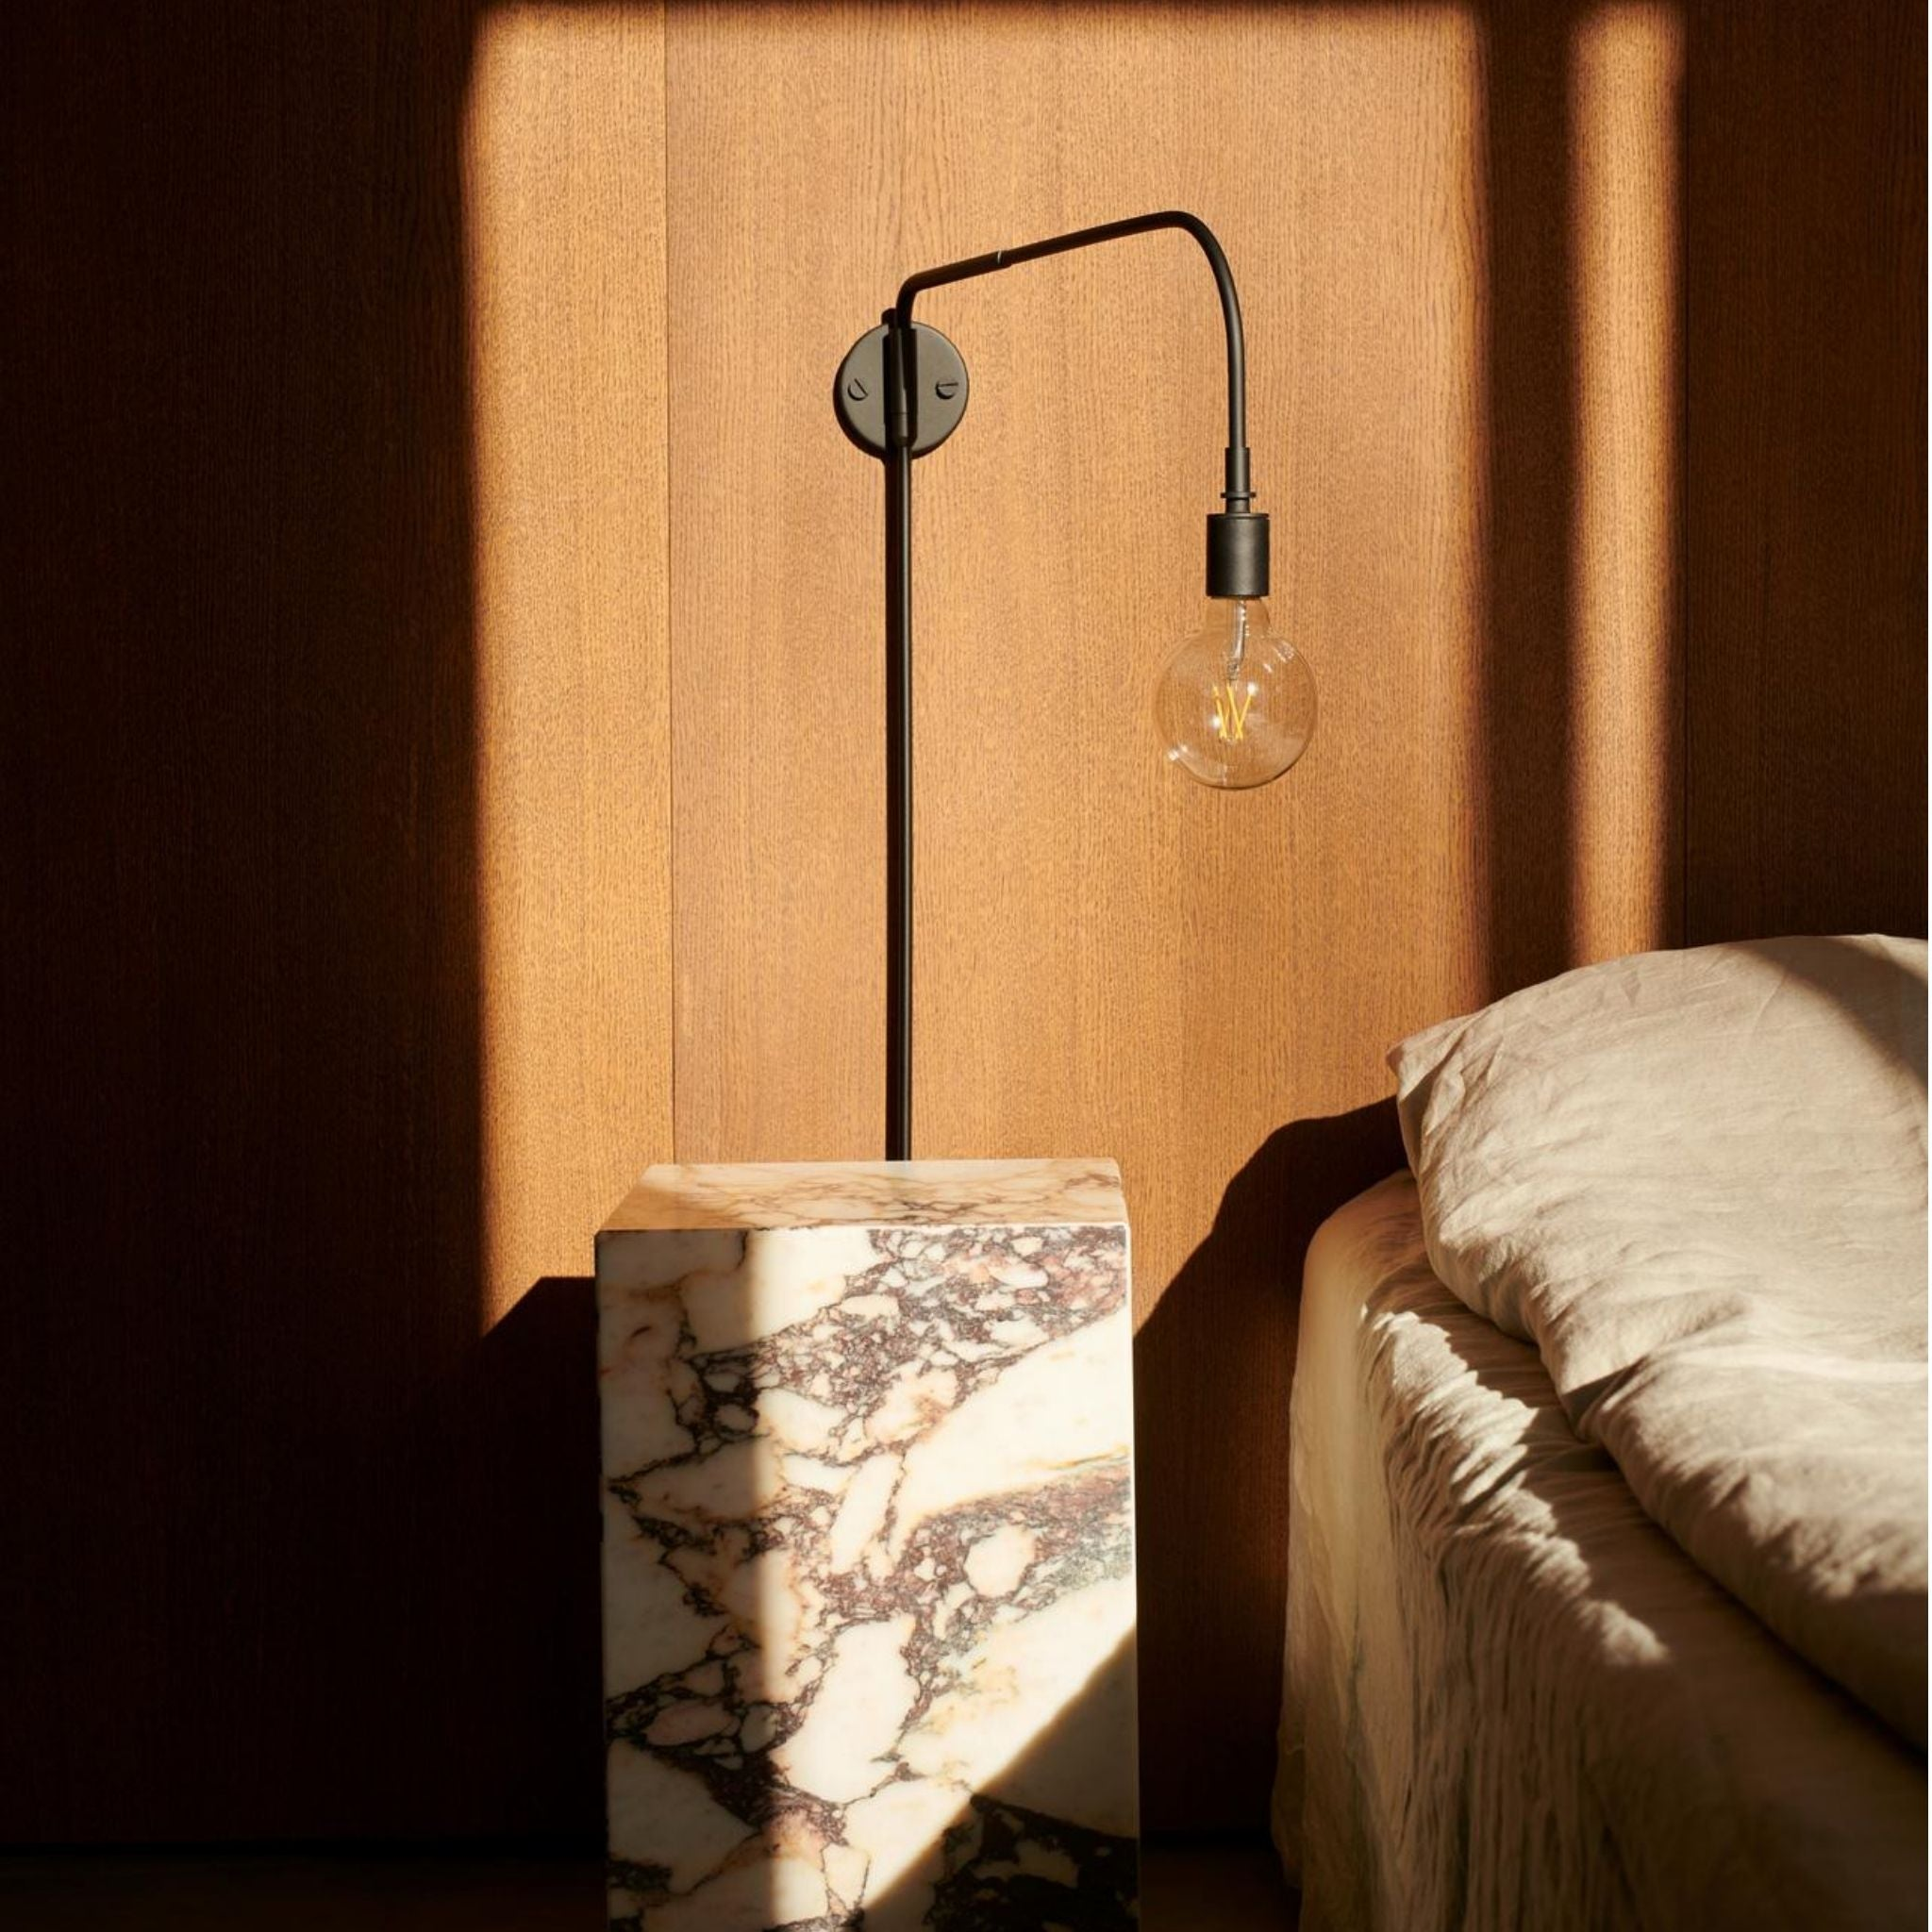 Staple Wall Lamp